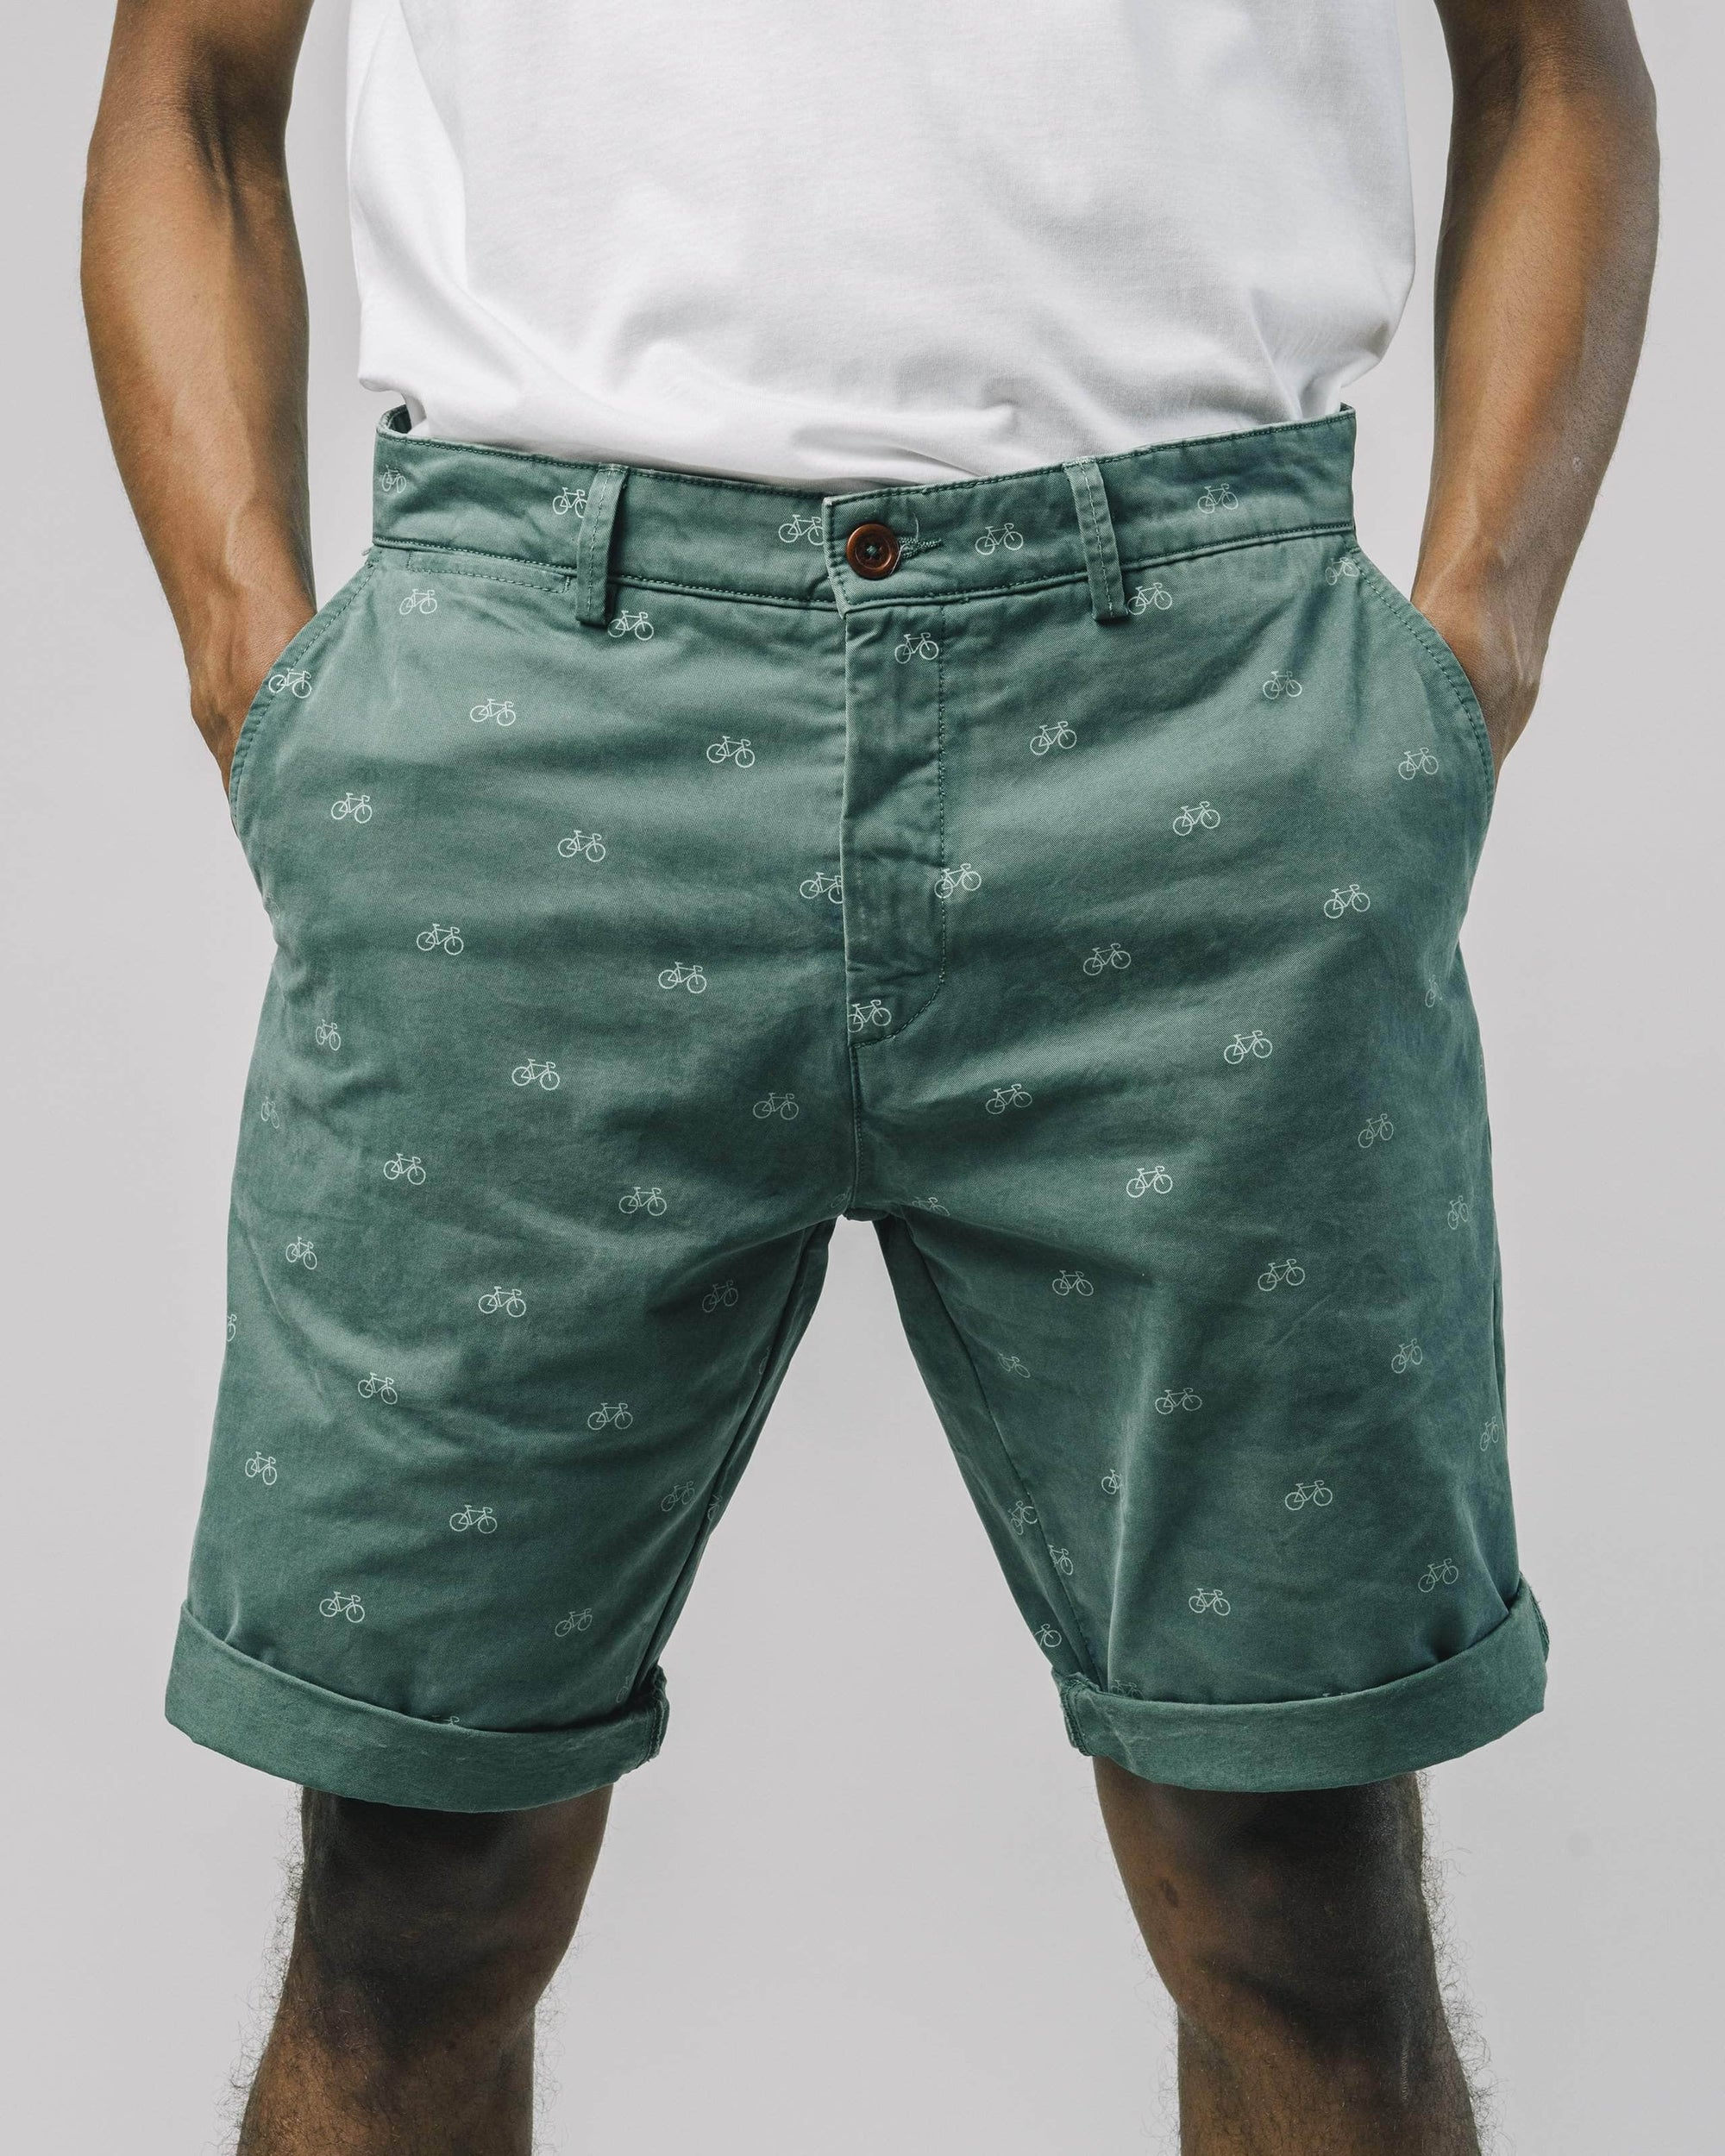 Discover our Fixed Gear Green Shorts made of Organic Cotton. Find sustainable Shorts for Men by Brava Fabrics, ethically made in Portugal. ✓ Fair ✓ Eco